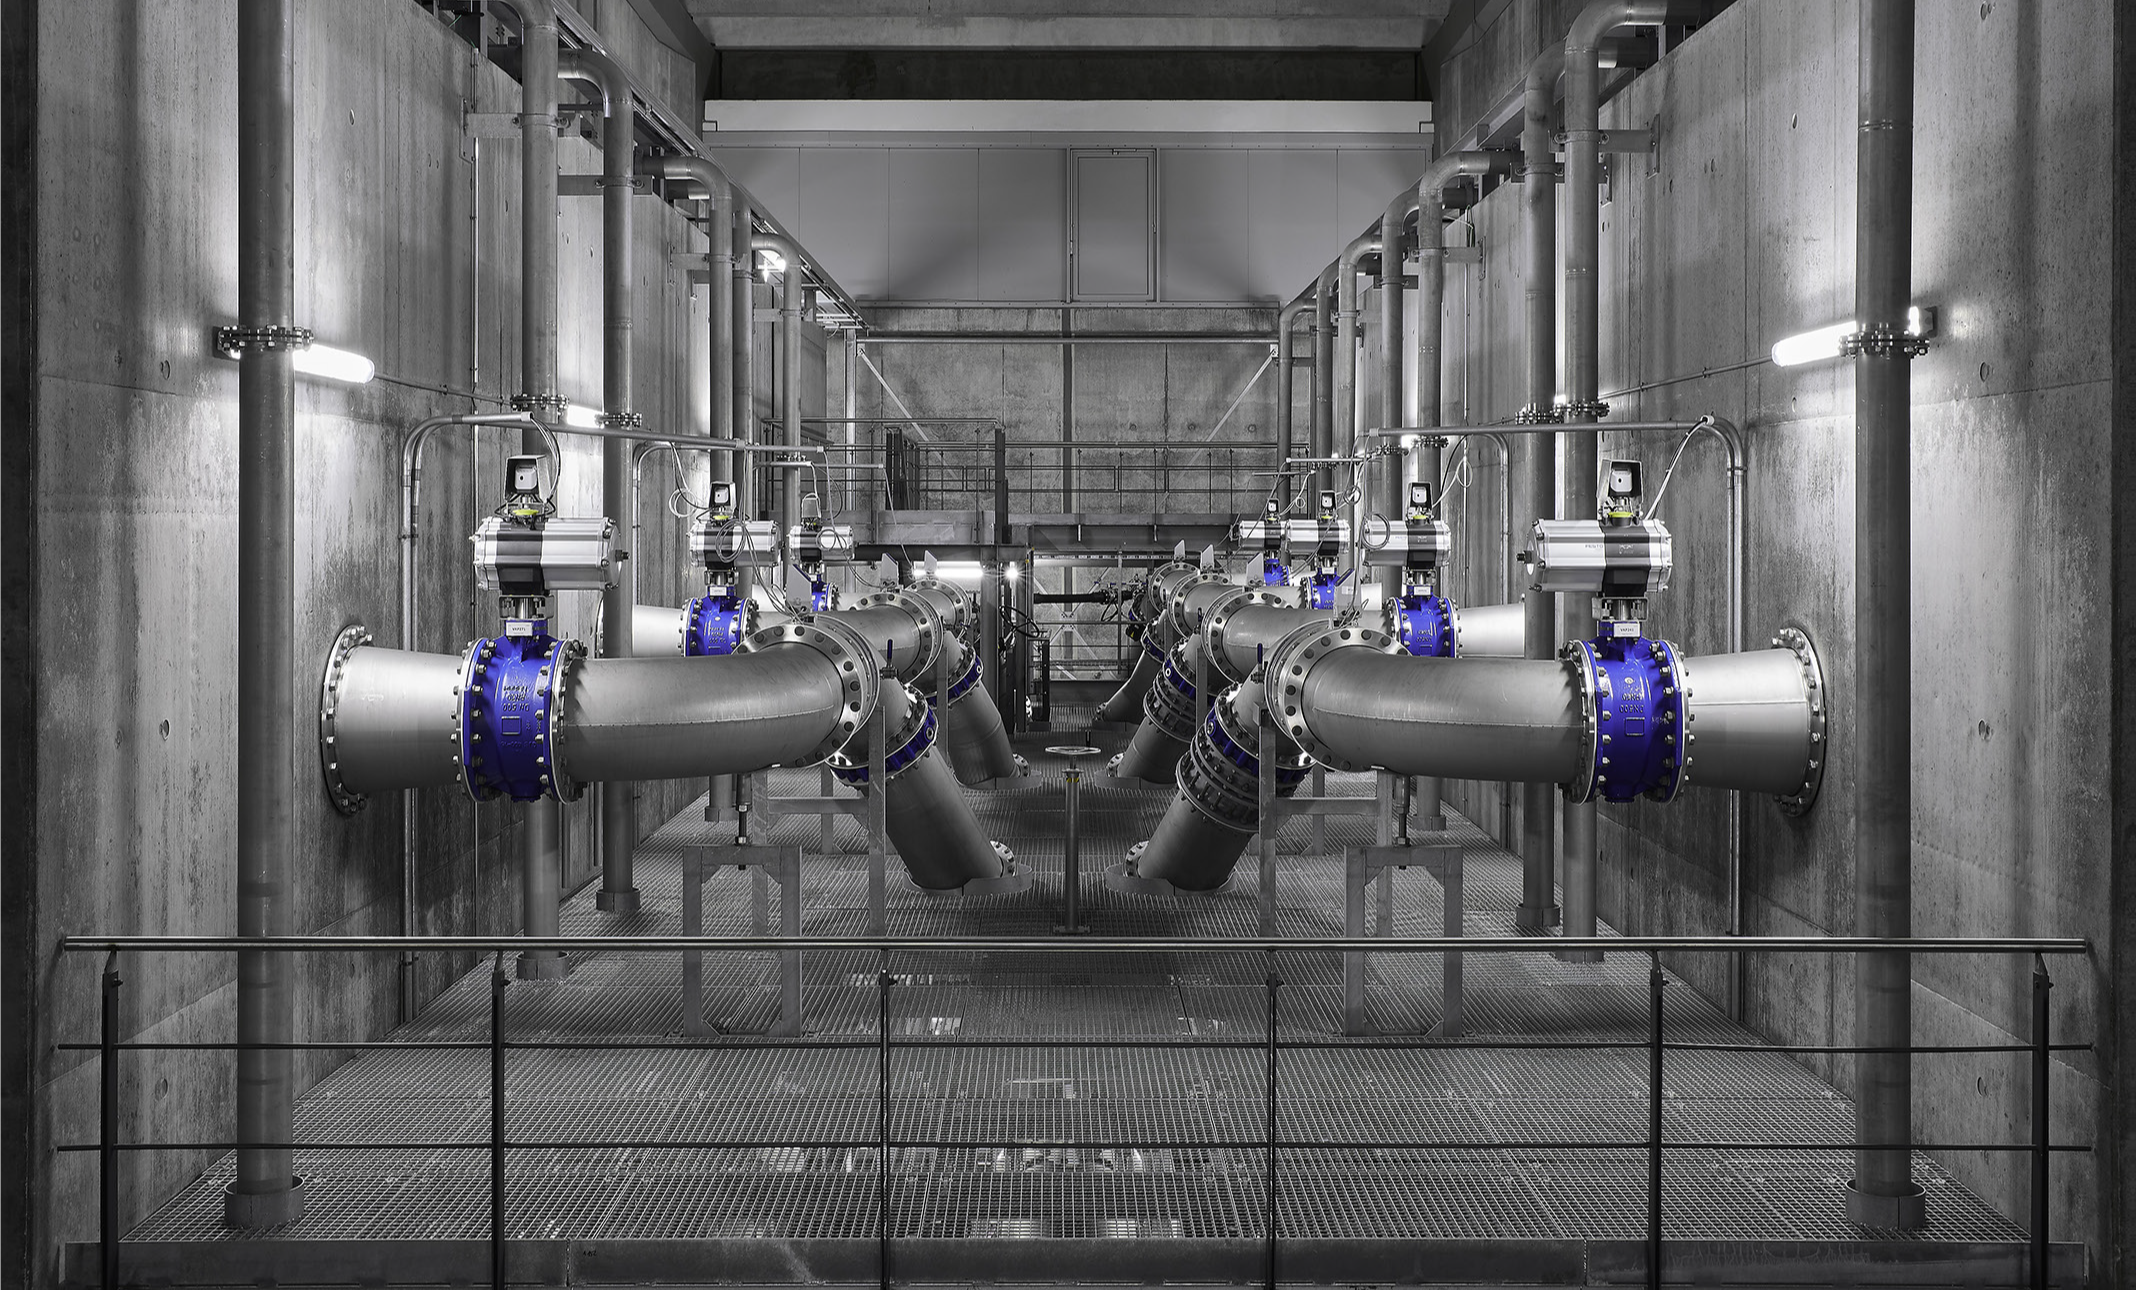 pneumatic system in the water industry